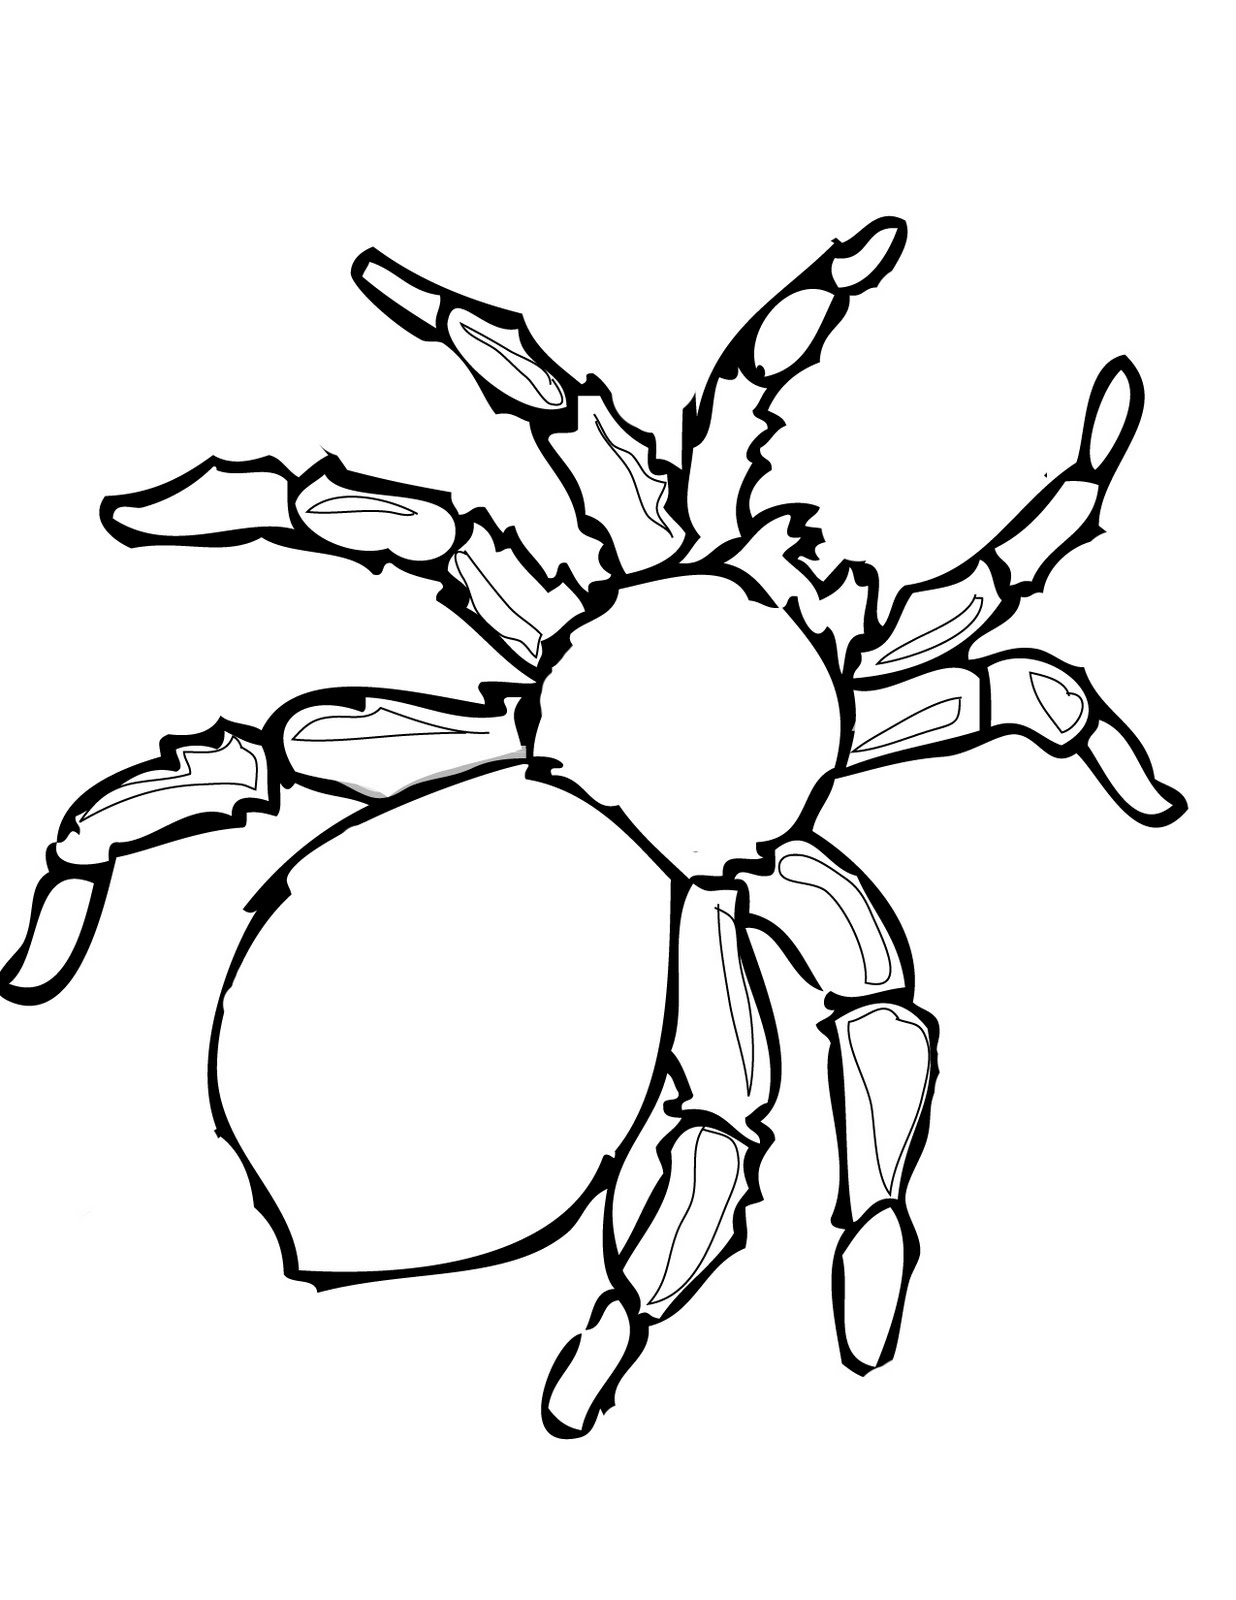 1236x1600 Printable Halloween Decoration Cutouts Spider Template, Spider